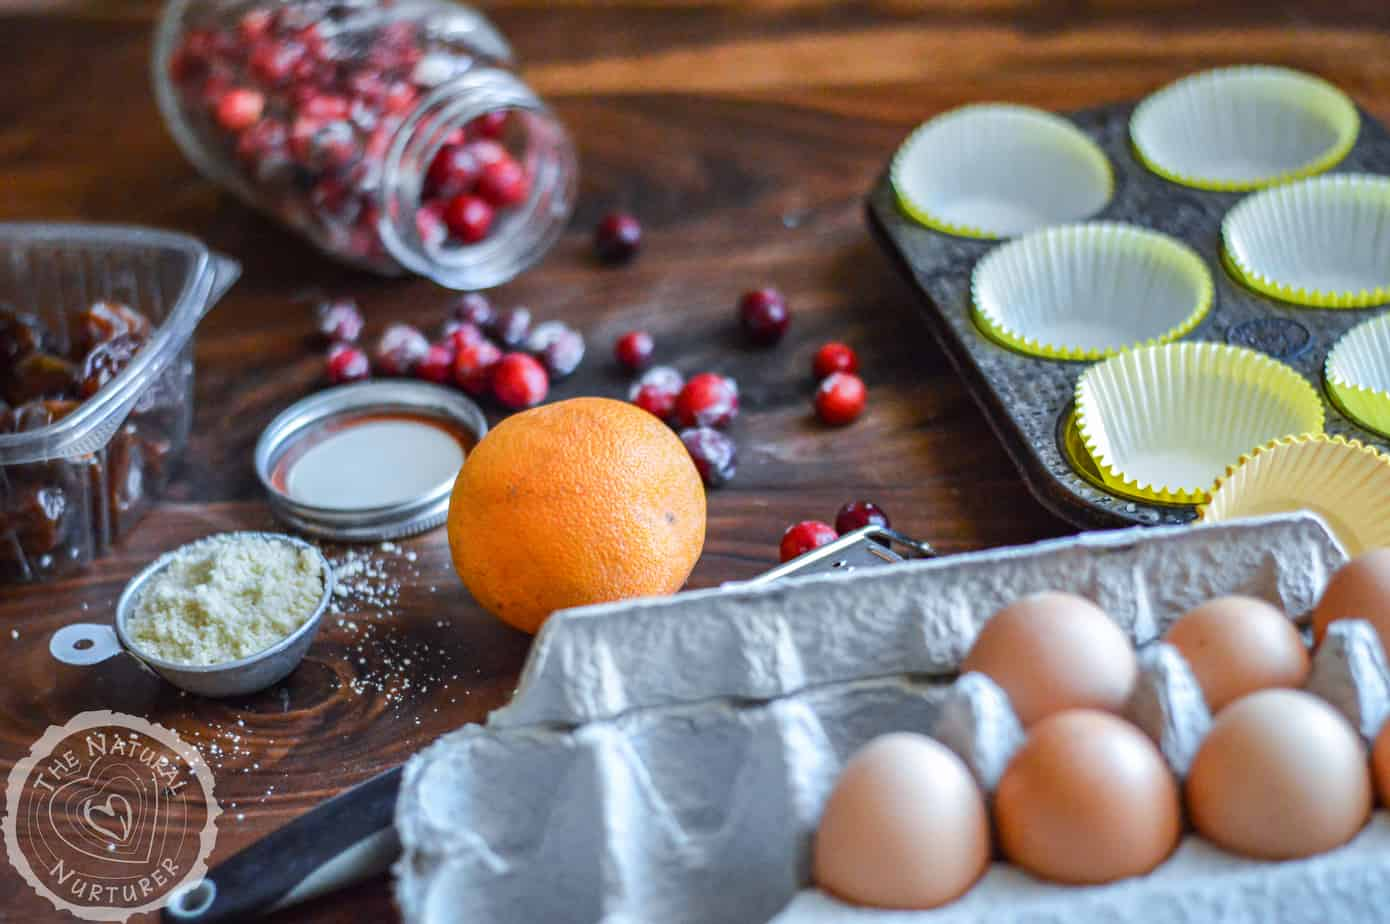 Presenting the ingredients necessary to make this delicious muffins recipe